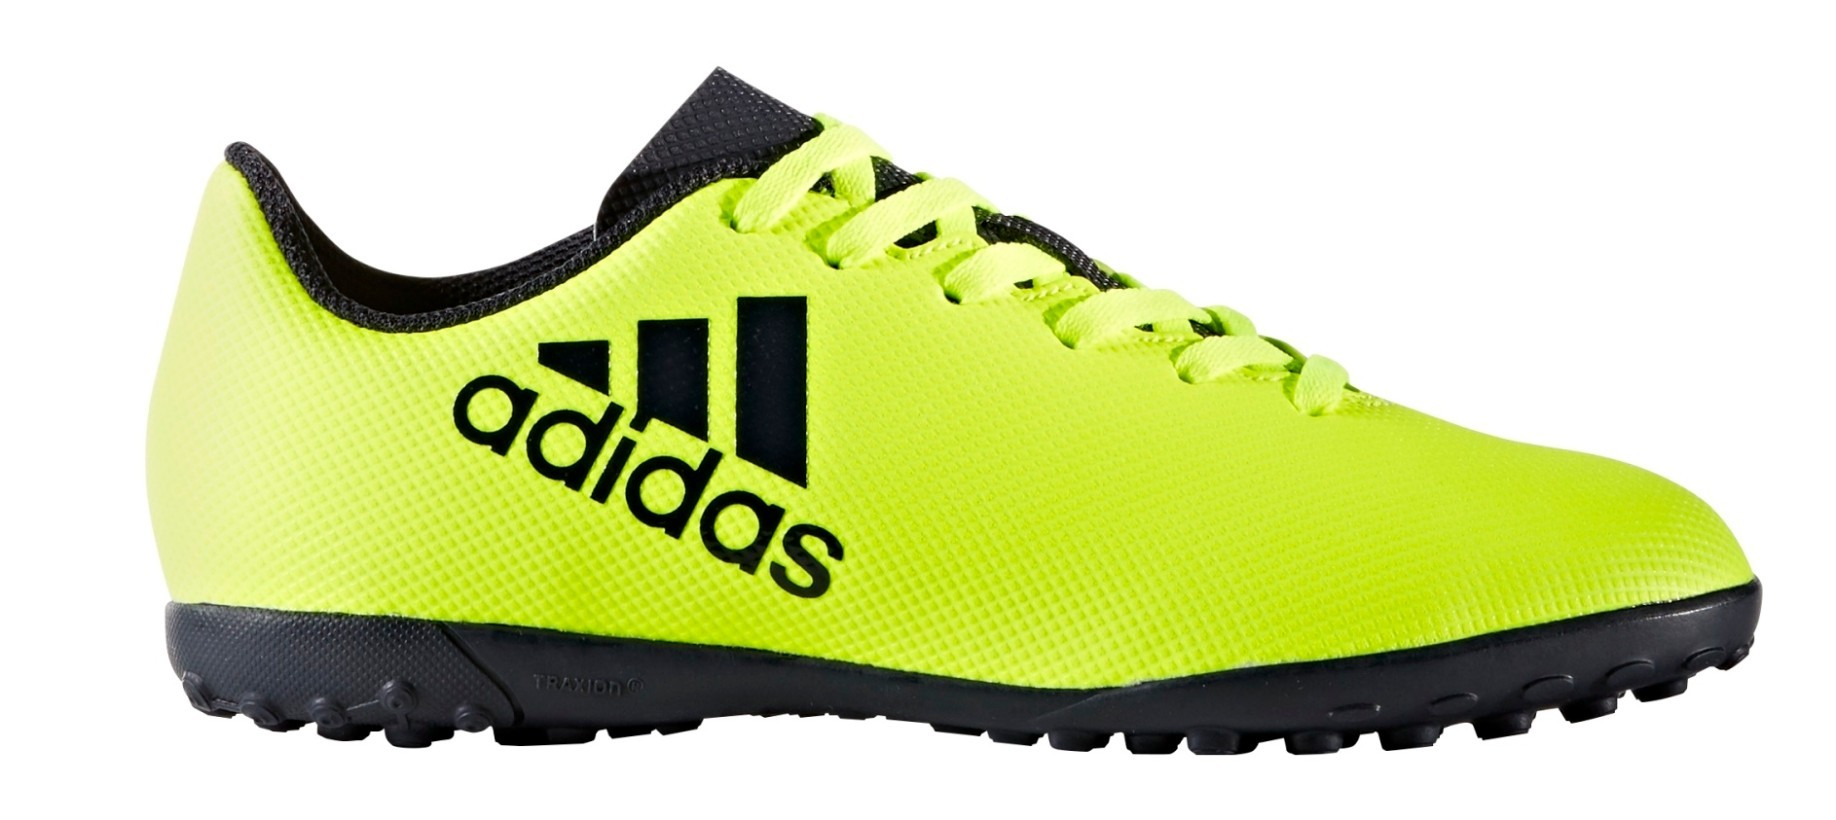 ADIDAS ACE 15.3 in leather atri Scarpe Futsal Scarpe Calcio Indoor Shoe SOCCER